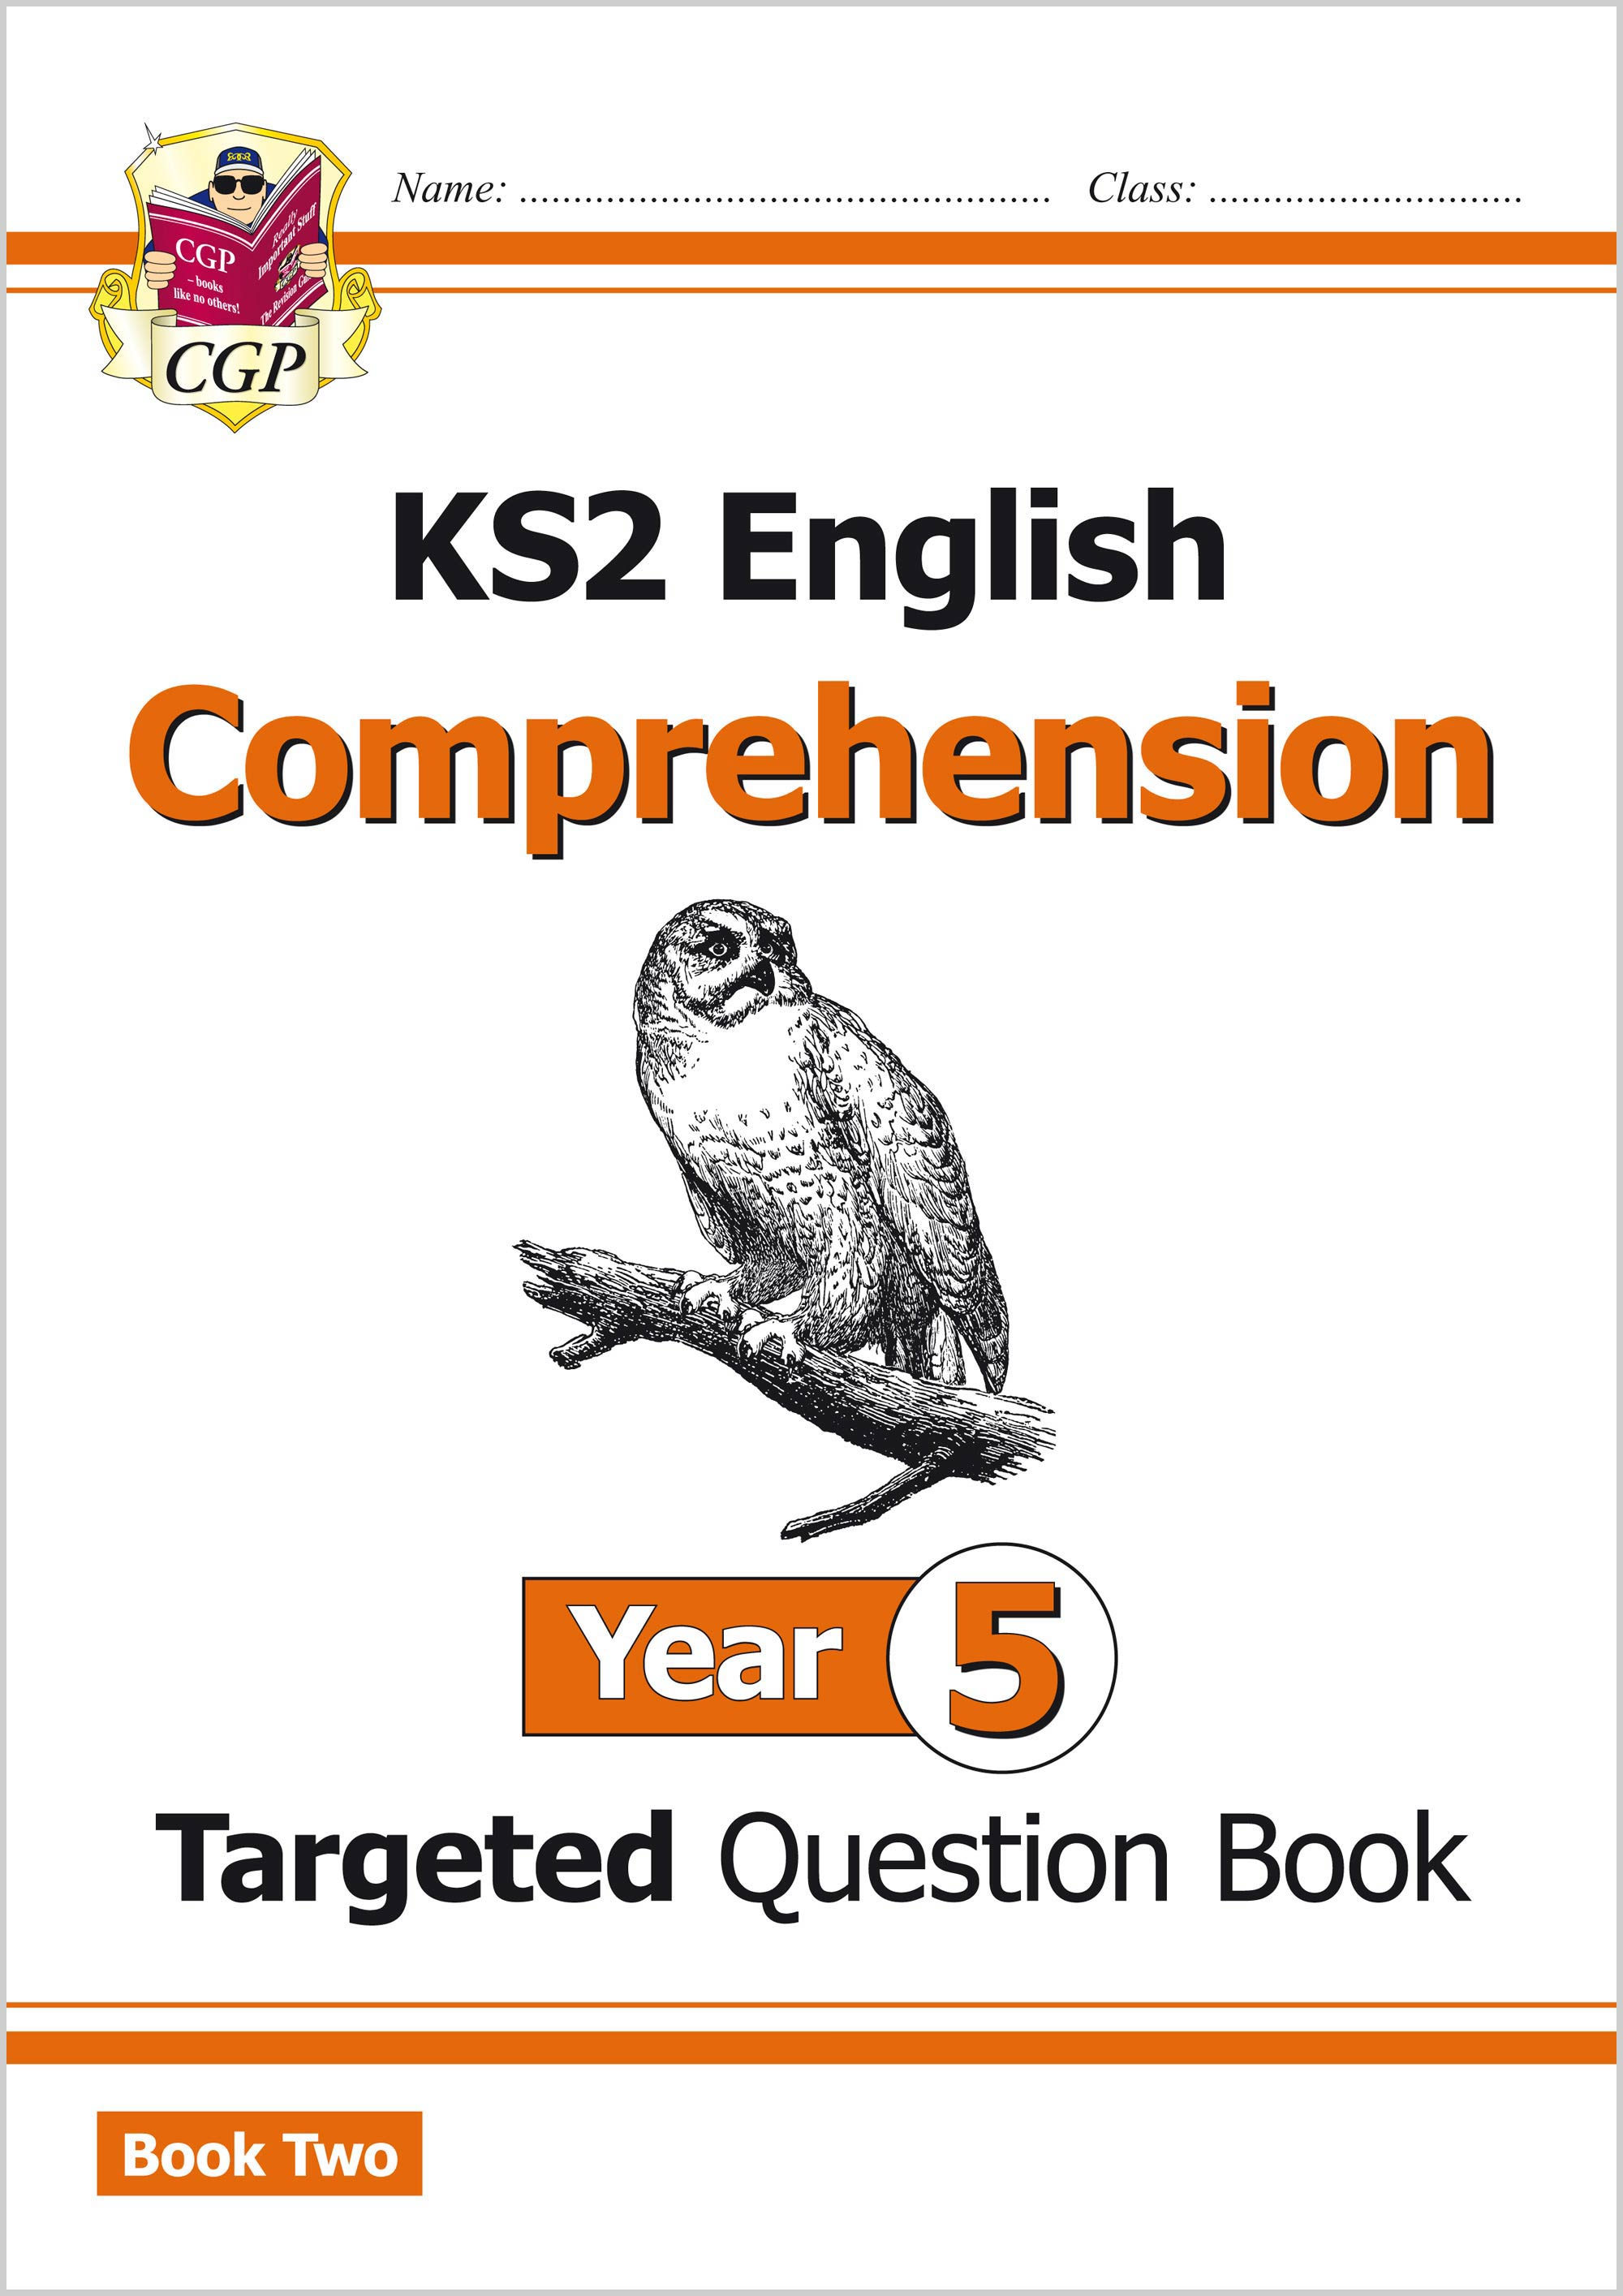 E5CW221 - New KS2 English Targeted Question Book: Year 5 Comprehension - Book 2